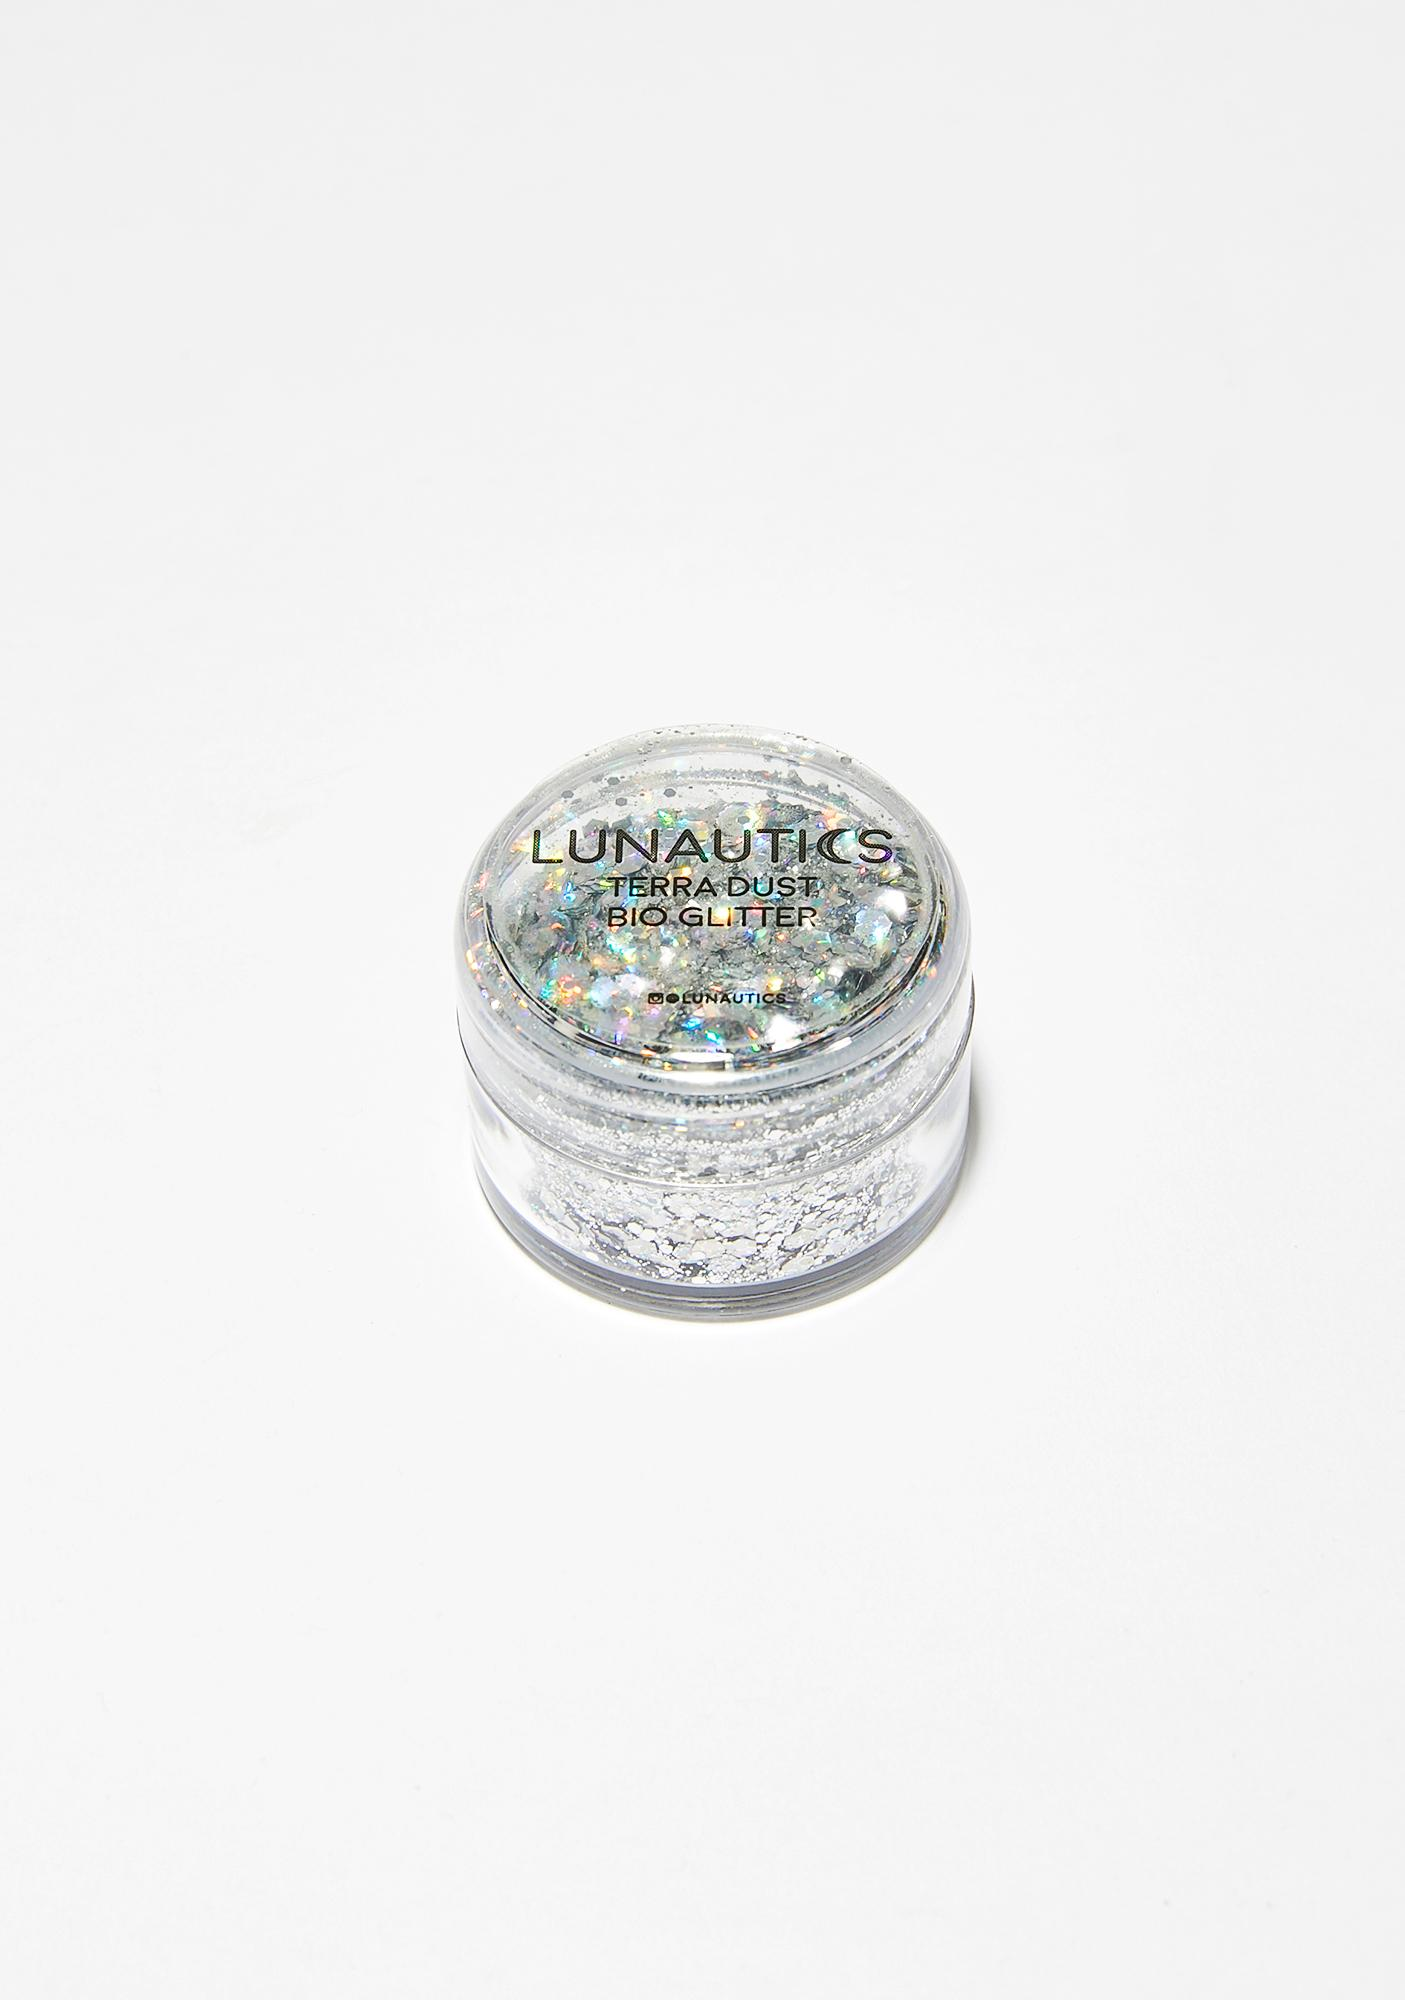 Lunautics candy commet